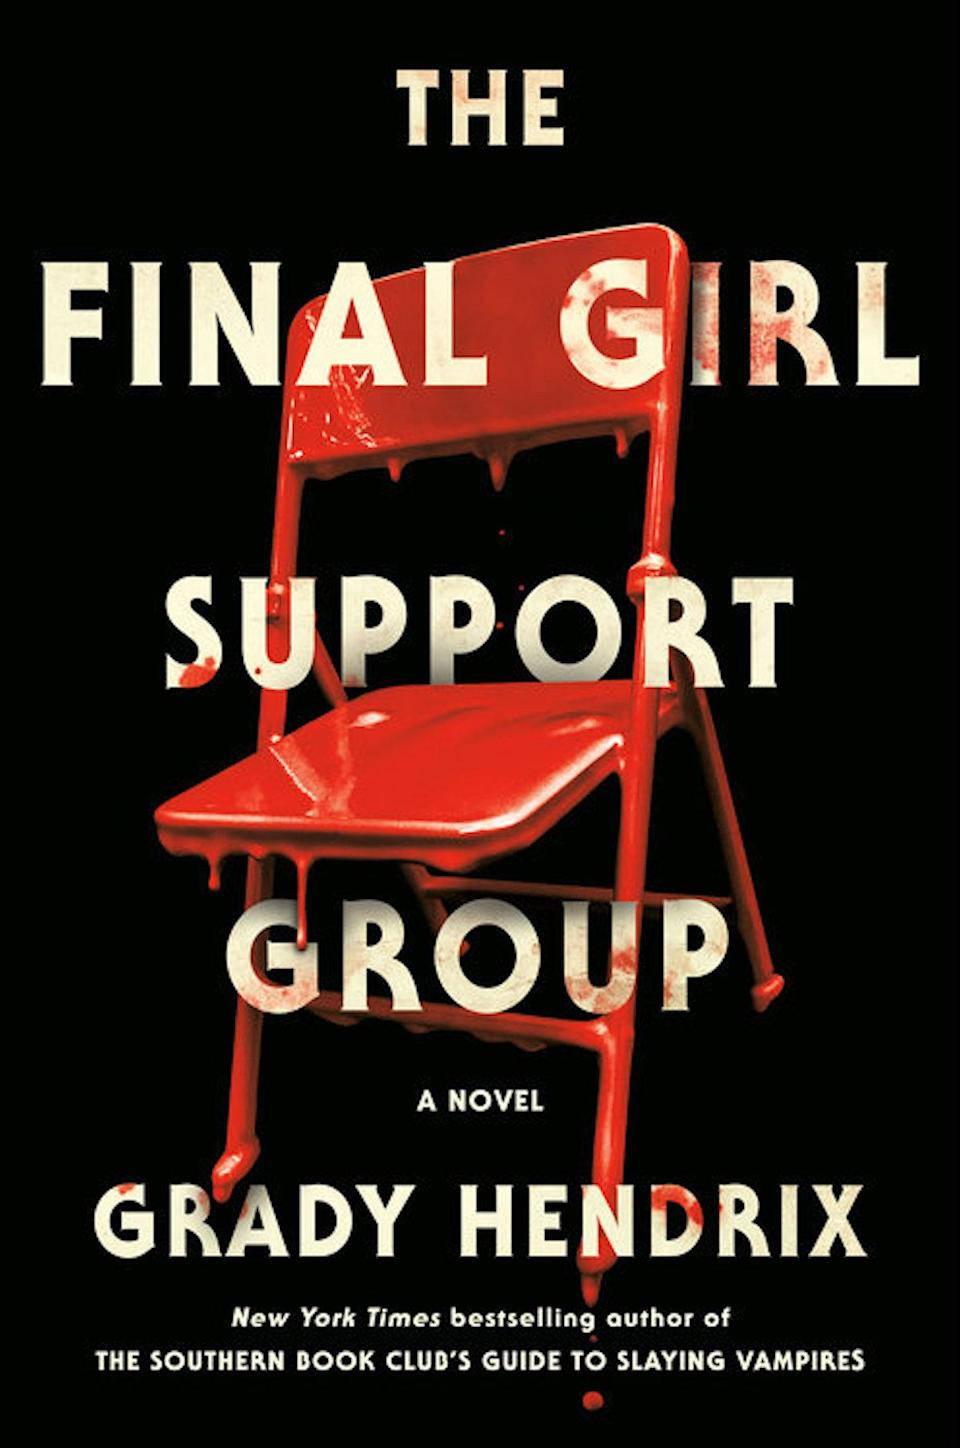 Final Girl Support Group Novel cover with a red bloody chair on a black background